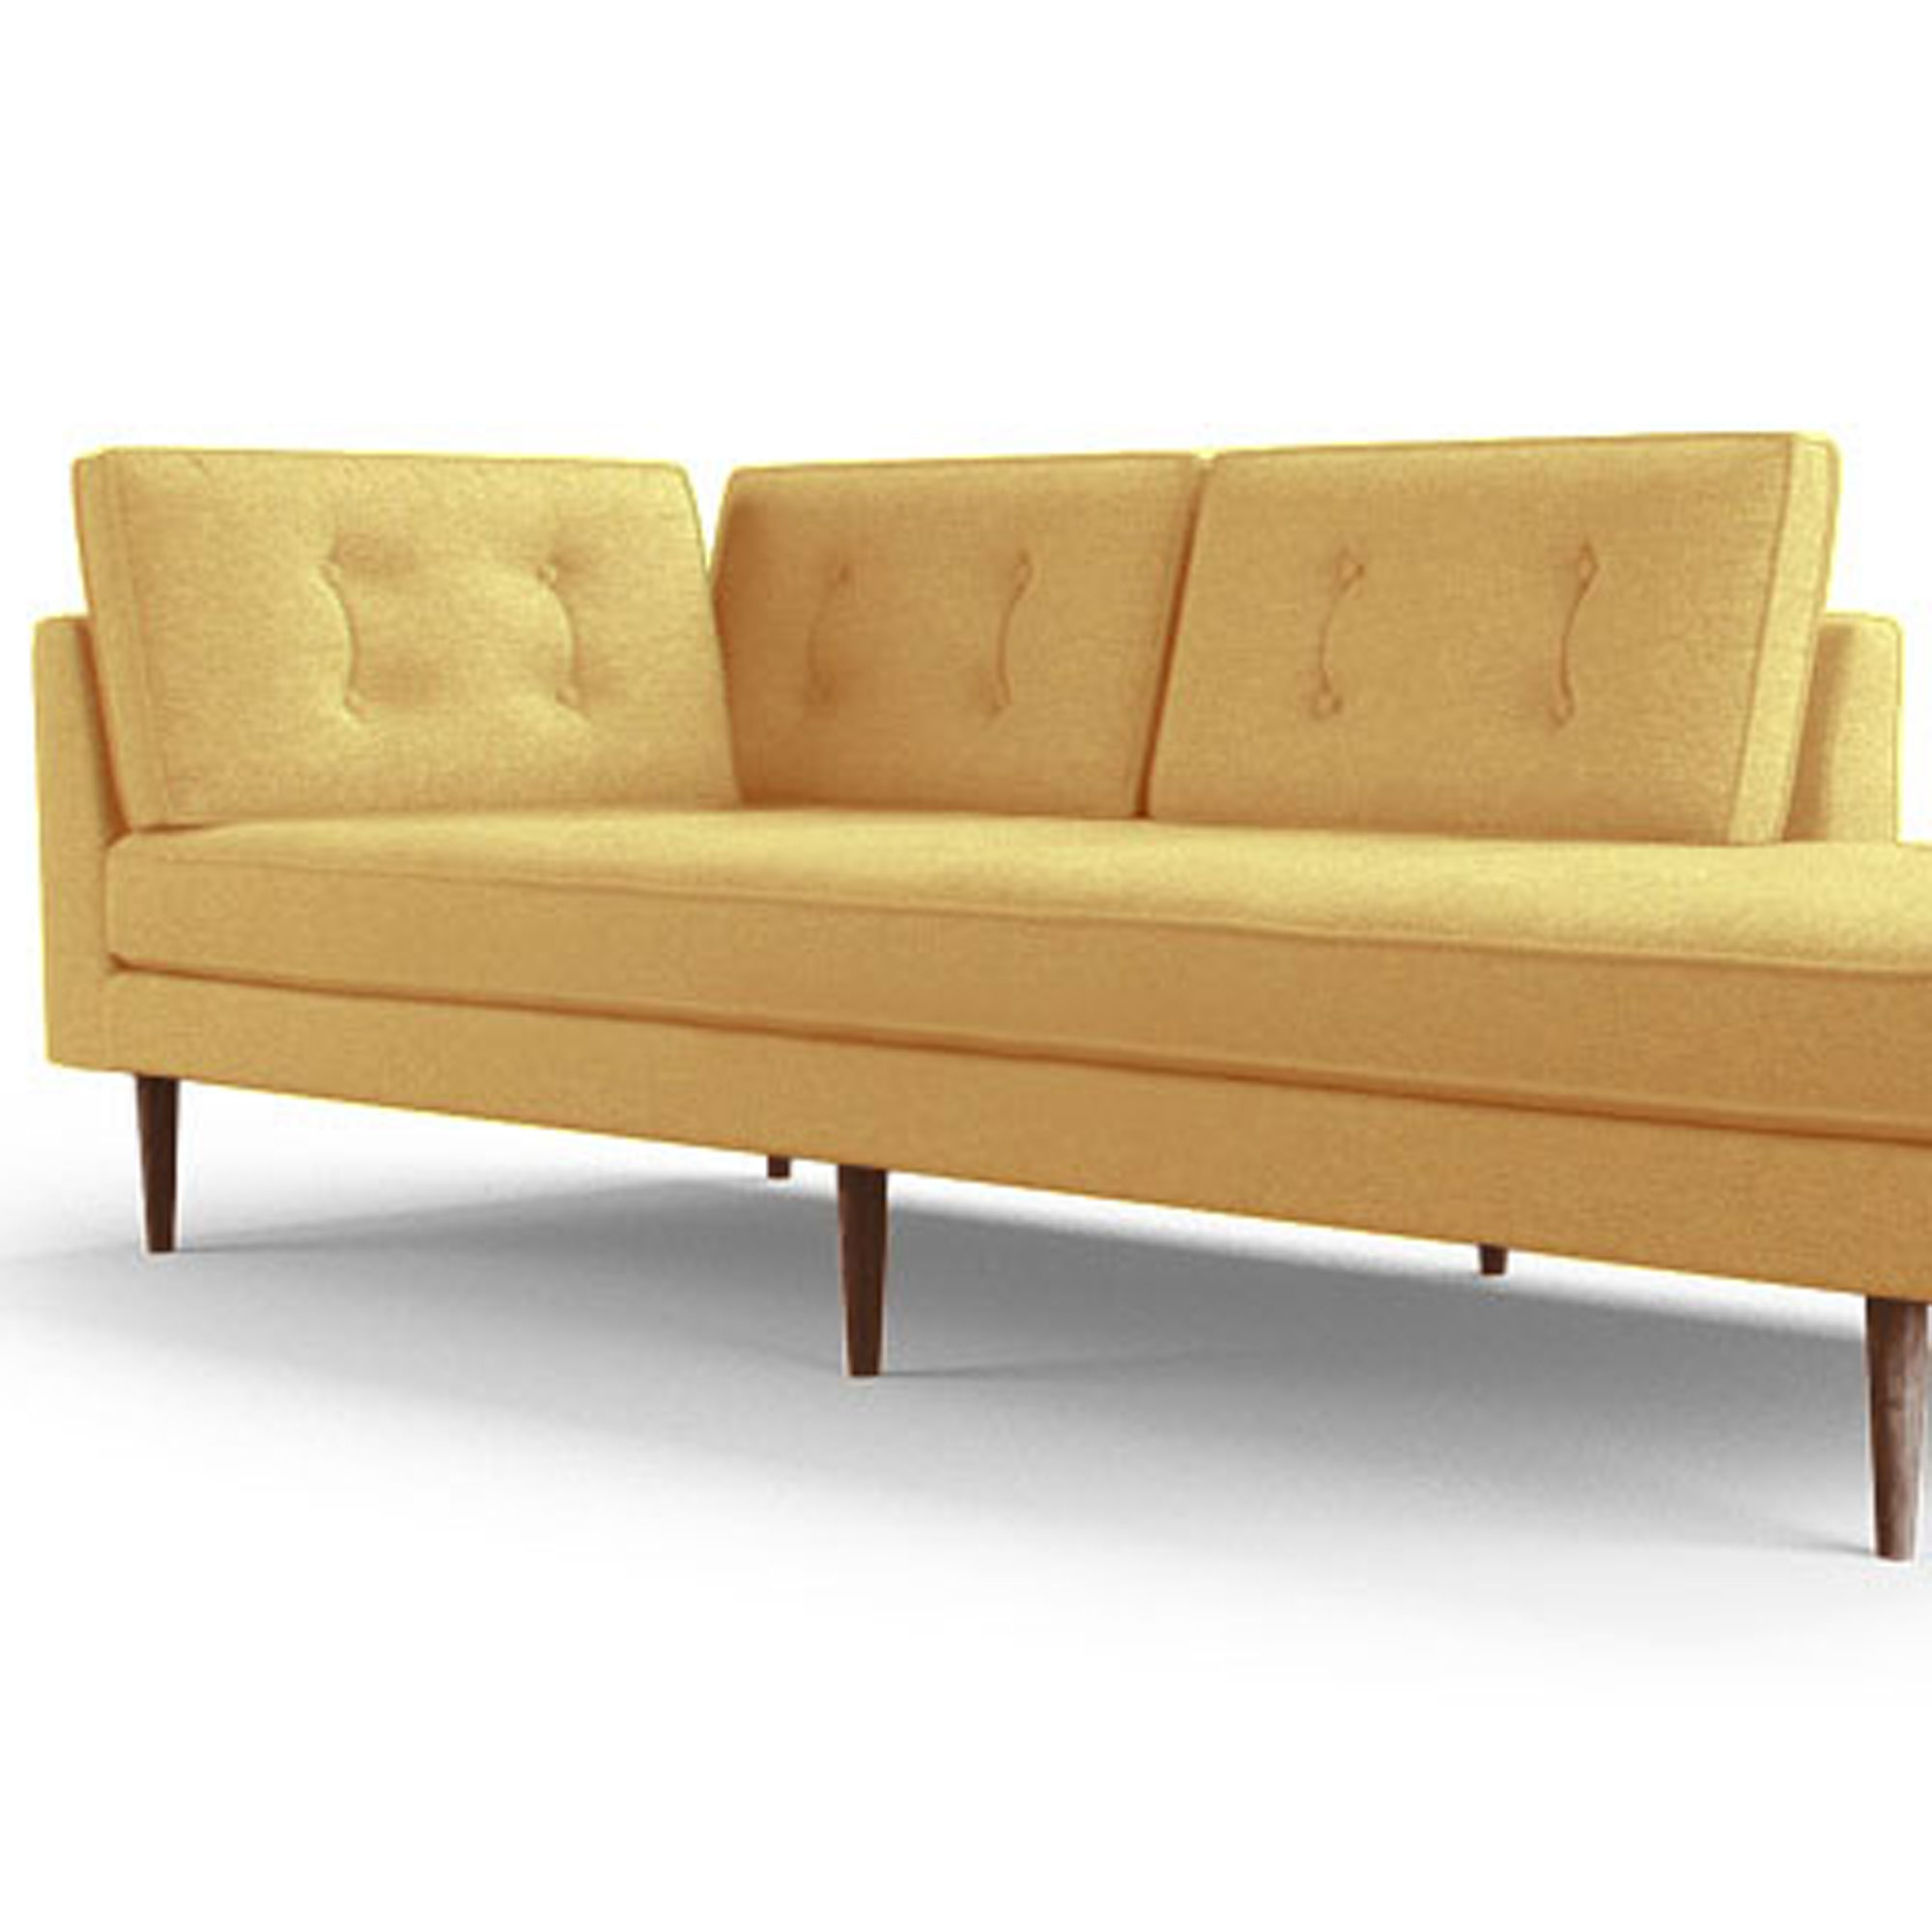 Pet Friendly Upholstery. Furniture Manufacturer ...